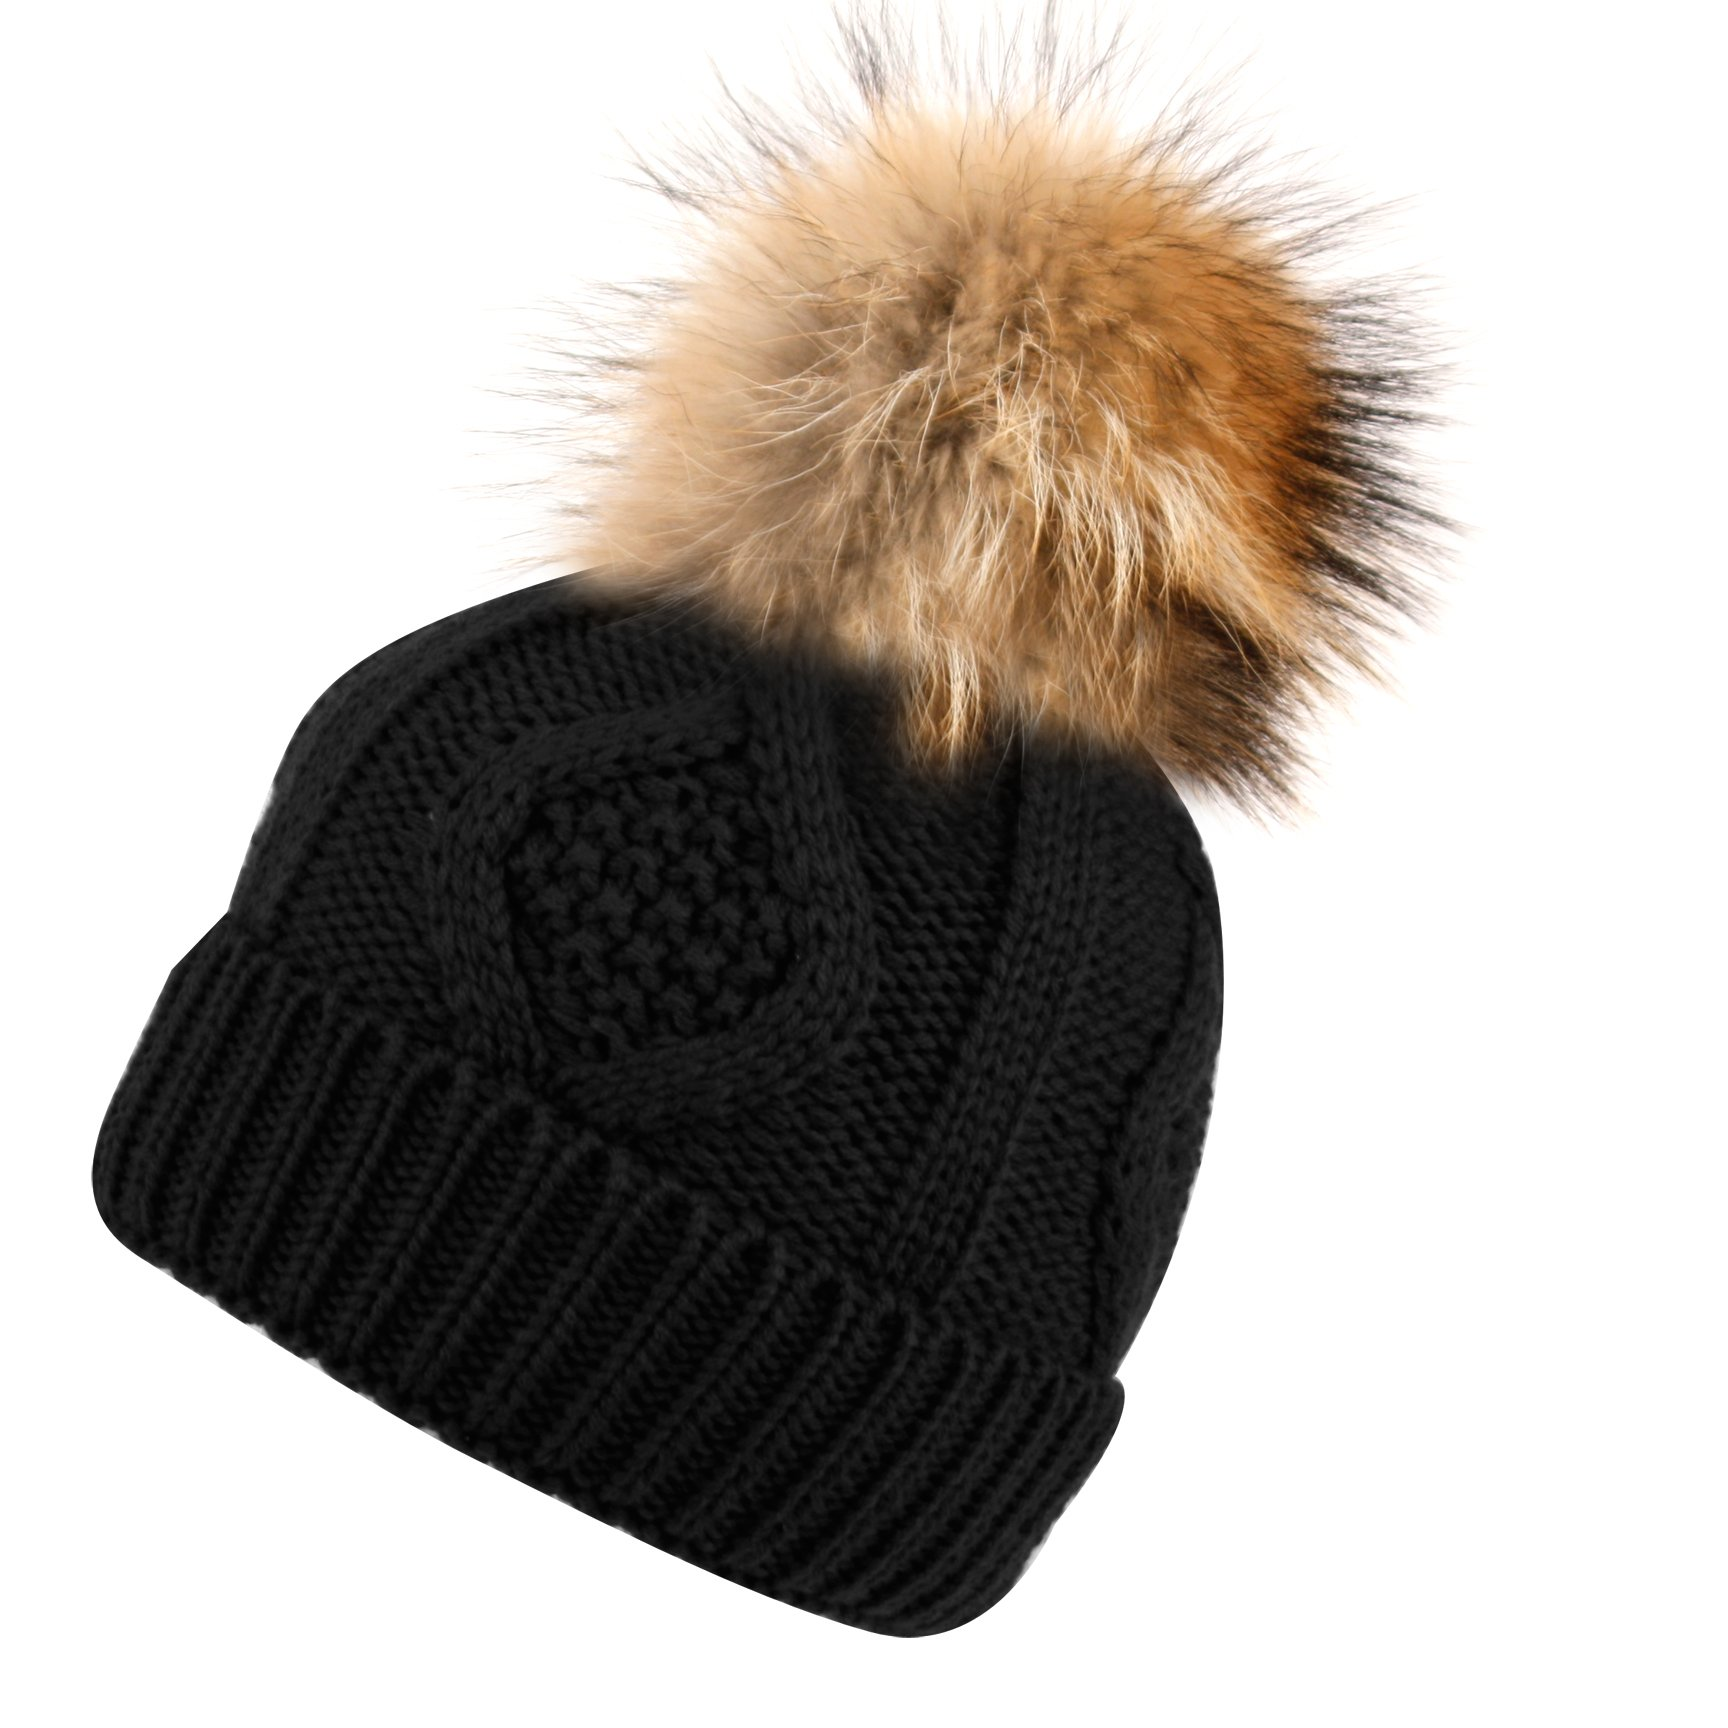 BN2355 Solid Cable Knit Real Raccoon Fur Pom Pom Skull Cap Hat Beanie (BLACK)